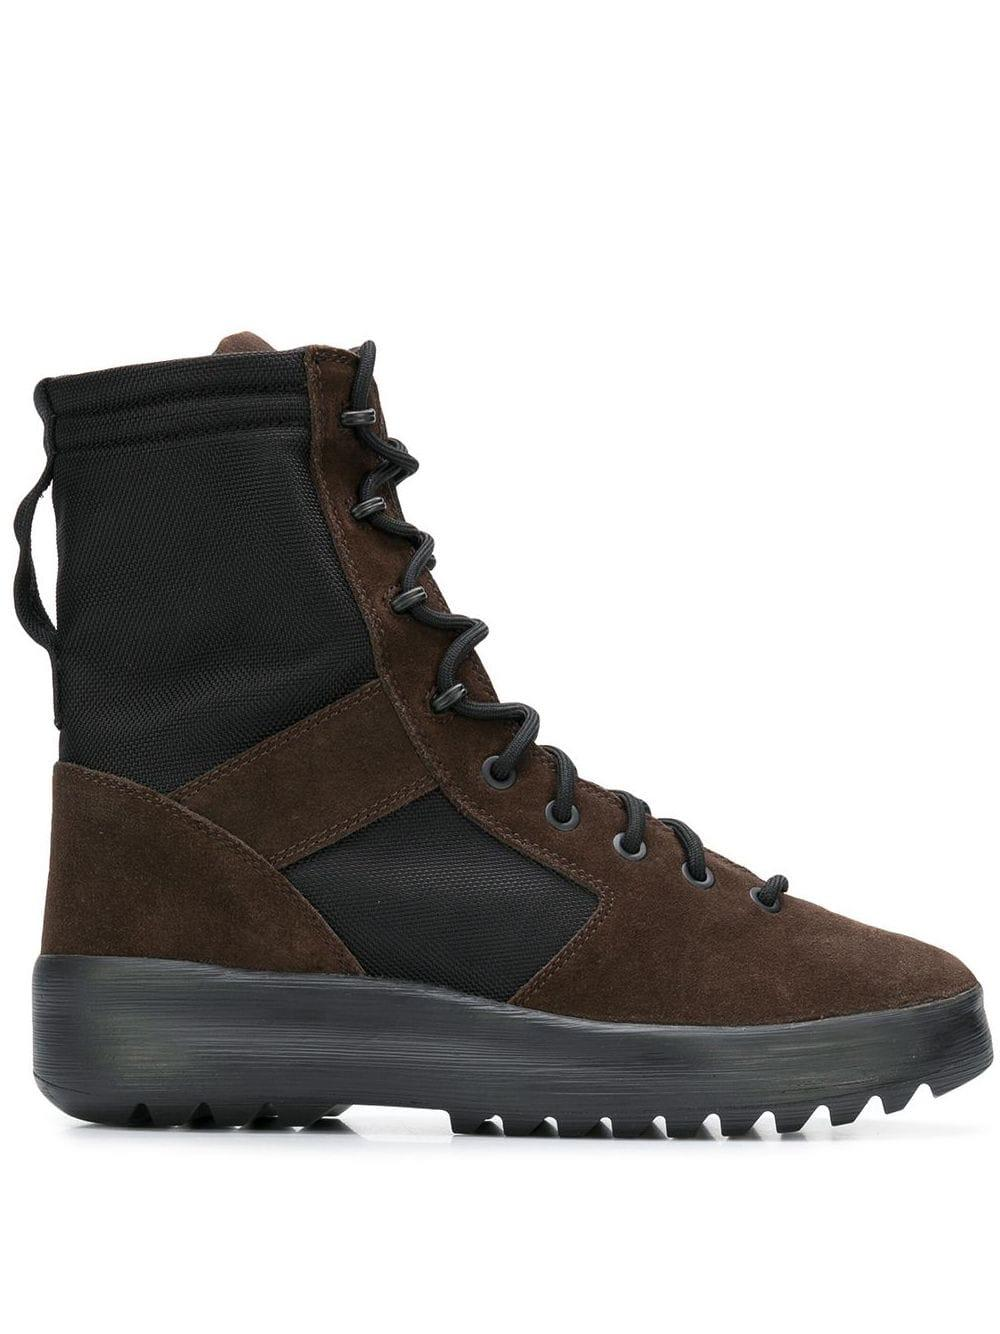 Yeezy Leather Lace Up Panelled Military Boots In Brown For